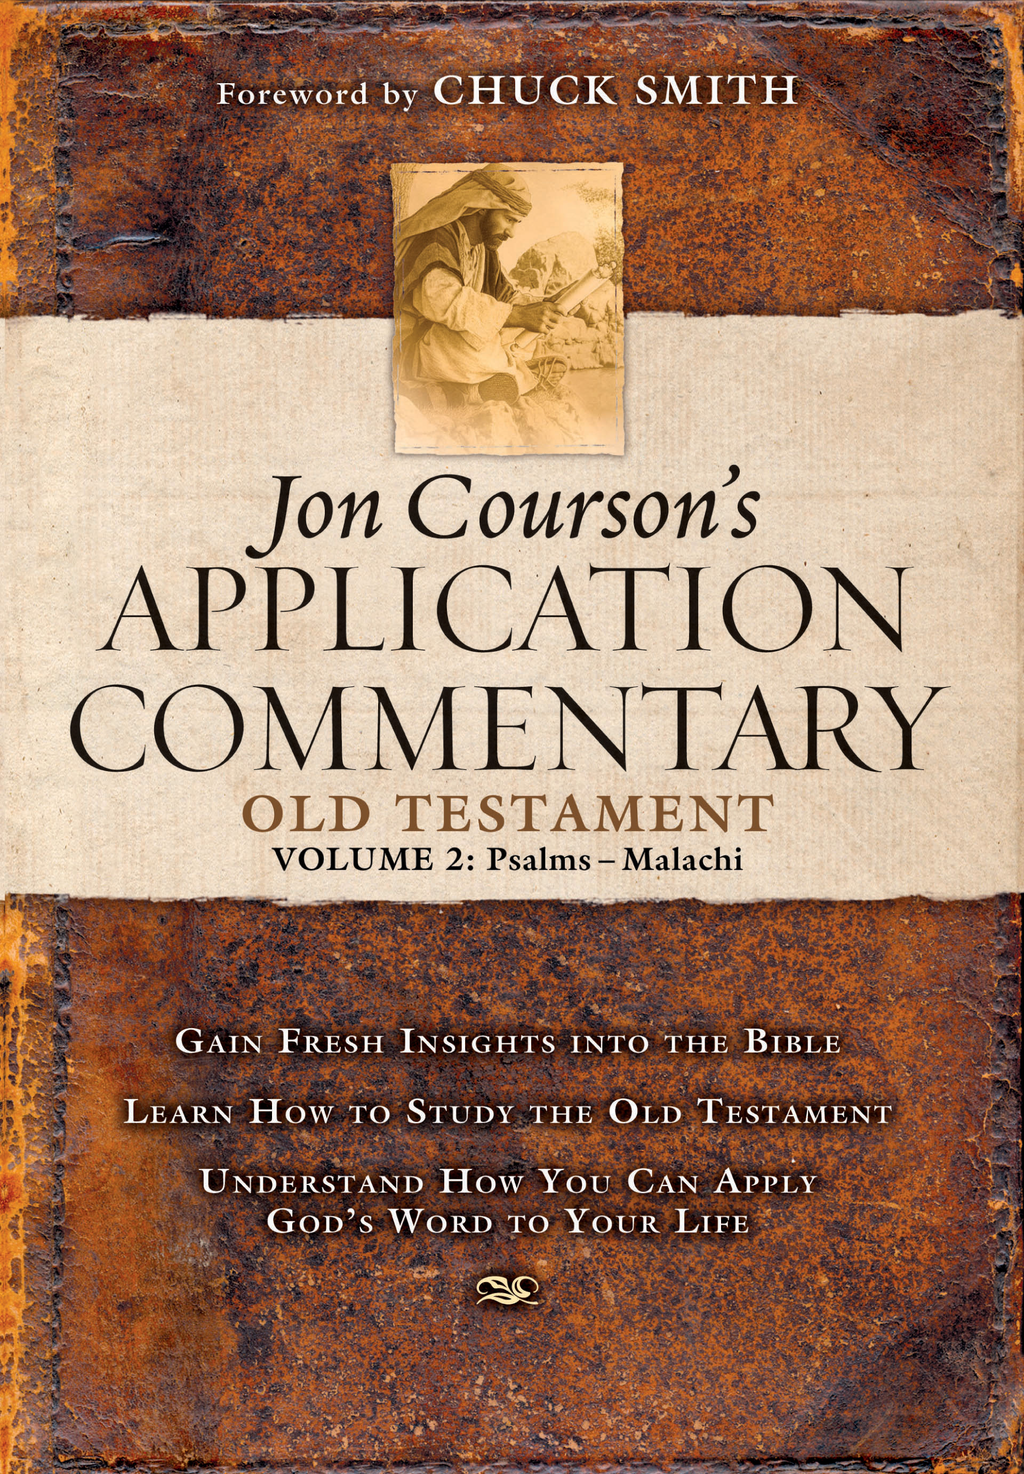 Courson's Application Commentary, Old Testament Volume 2 (Psalms-Malachi)